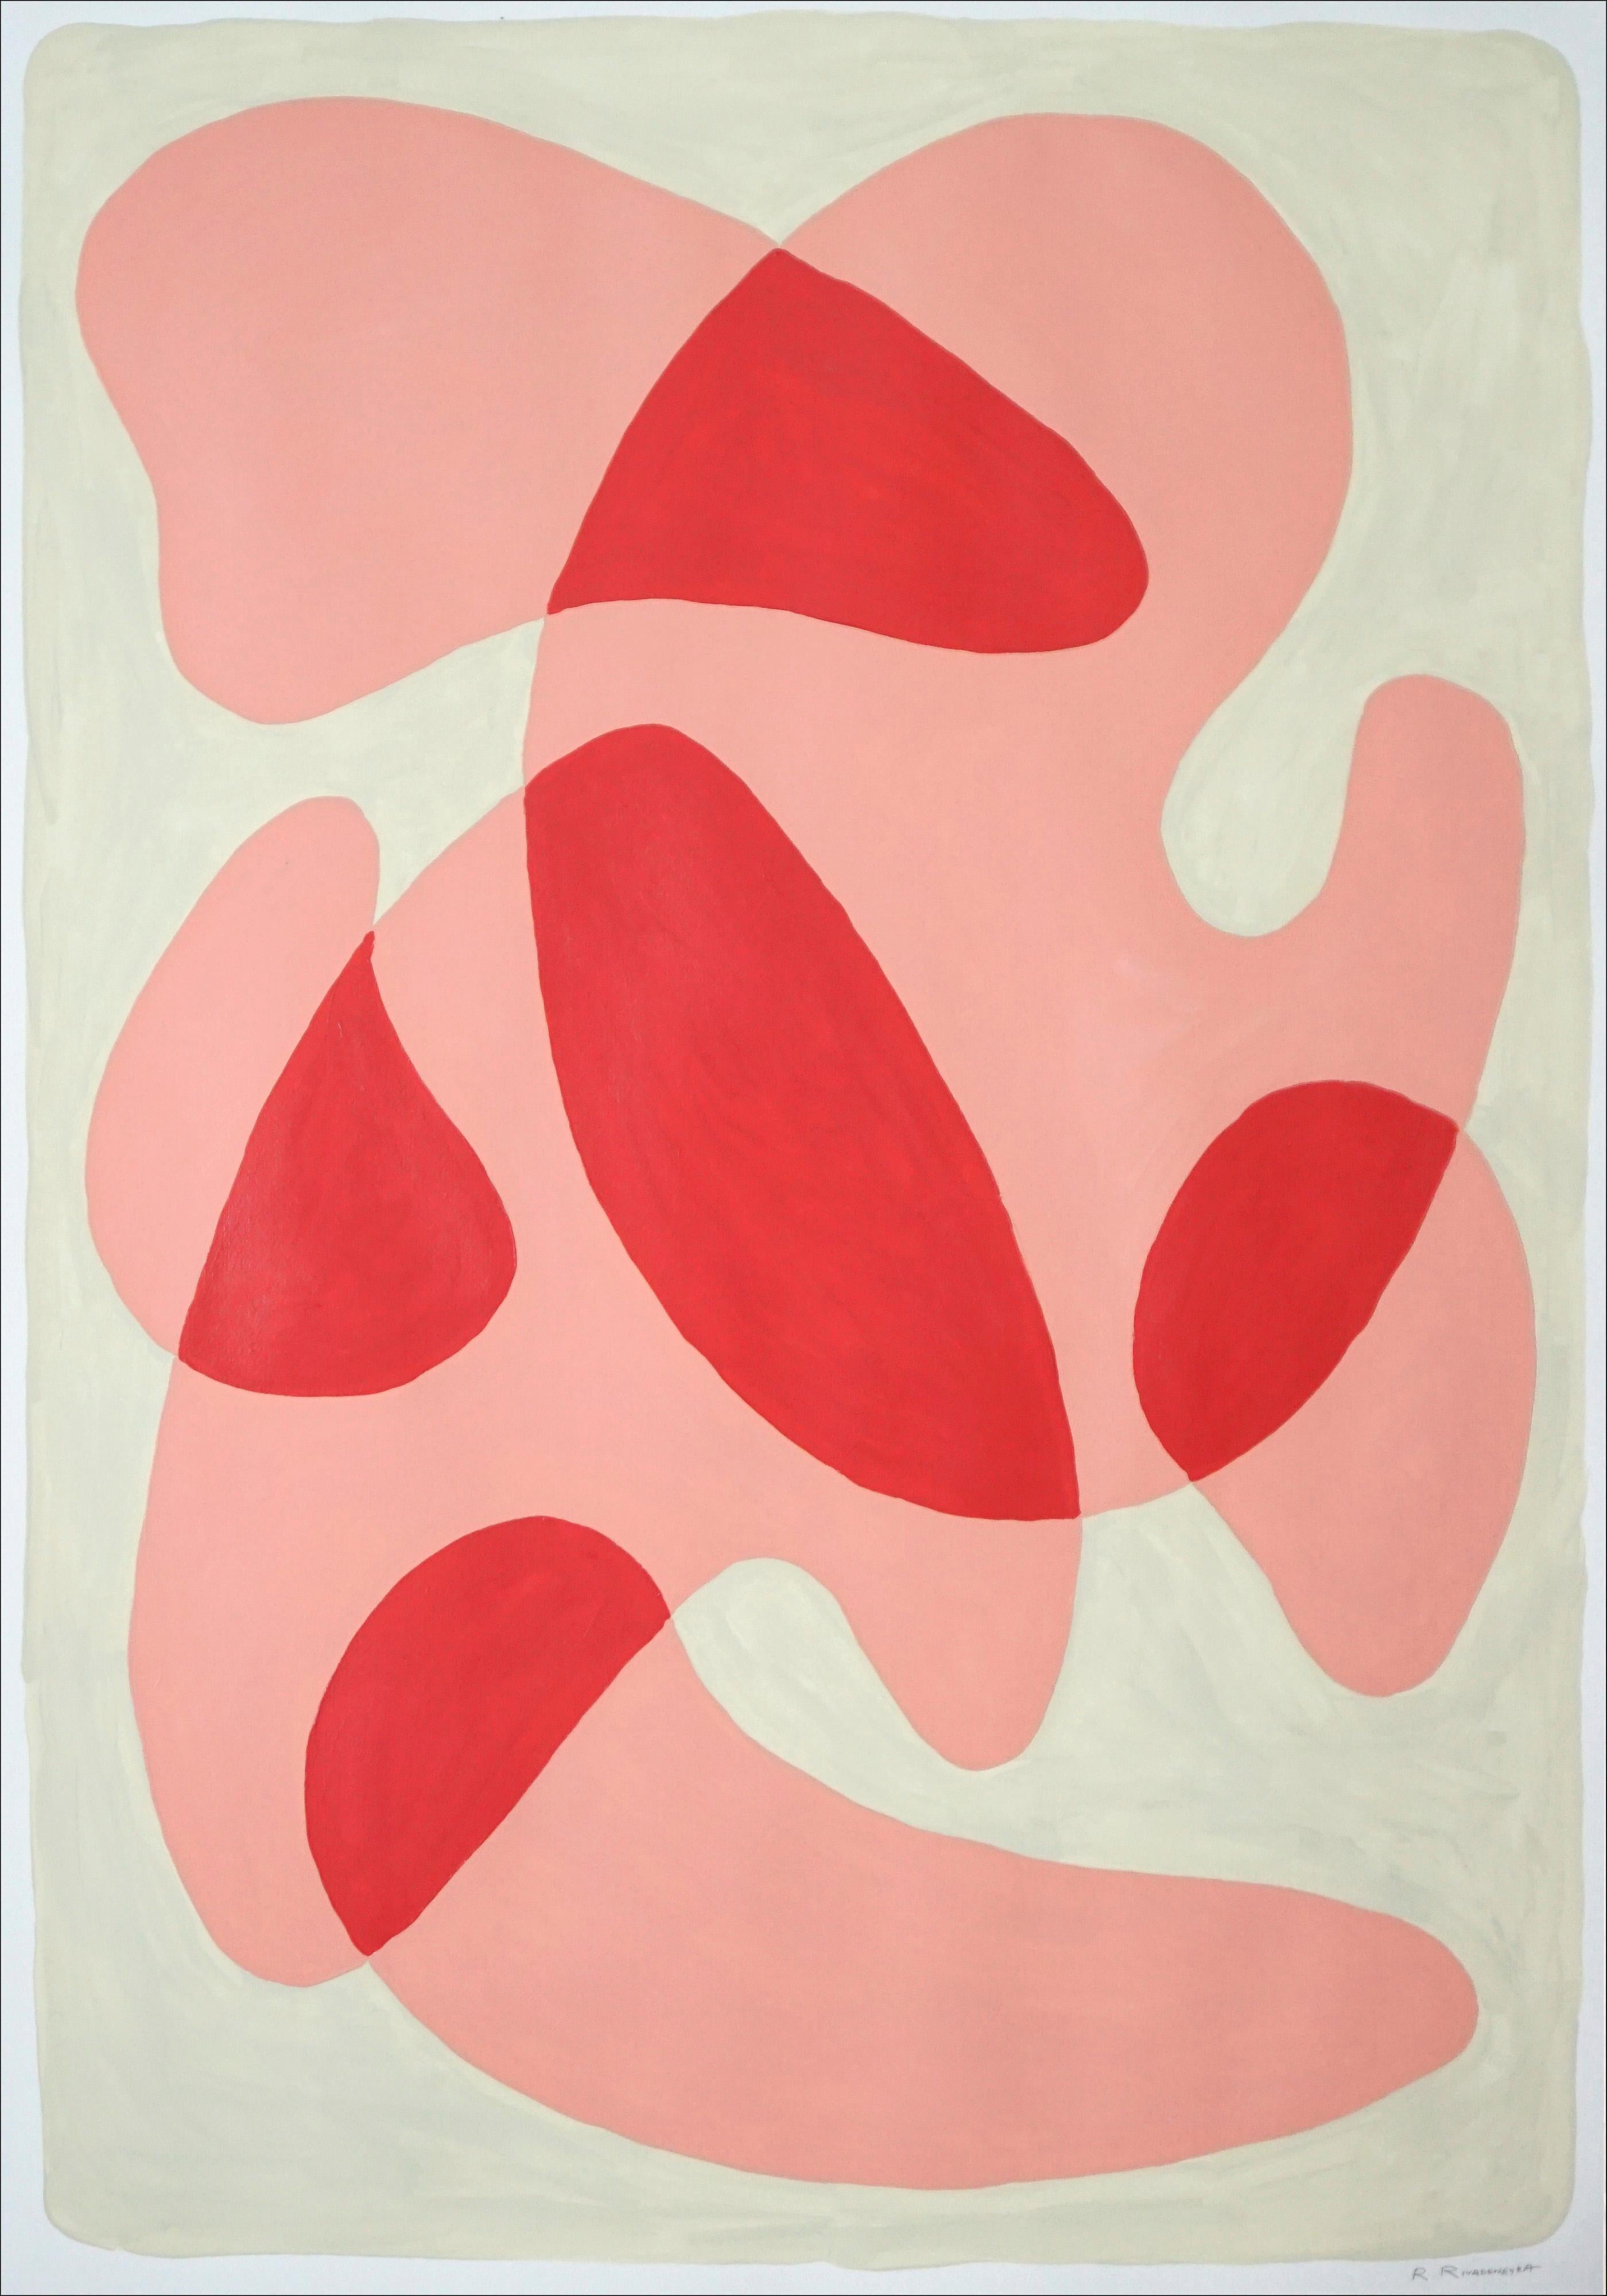 Rounded Simple Shapes in Warm Tones, Pastel Palette, Mid-Century Painting, 2021